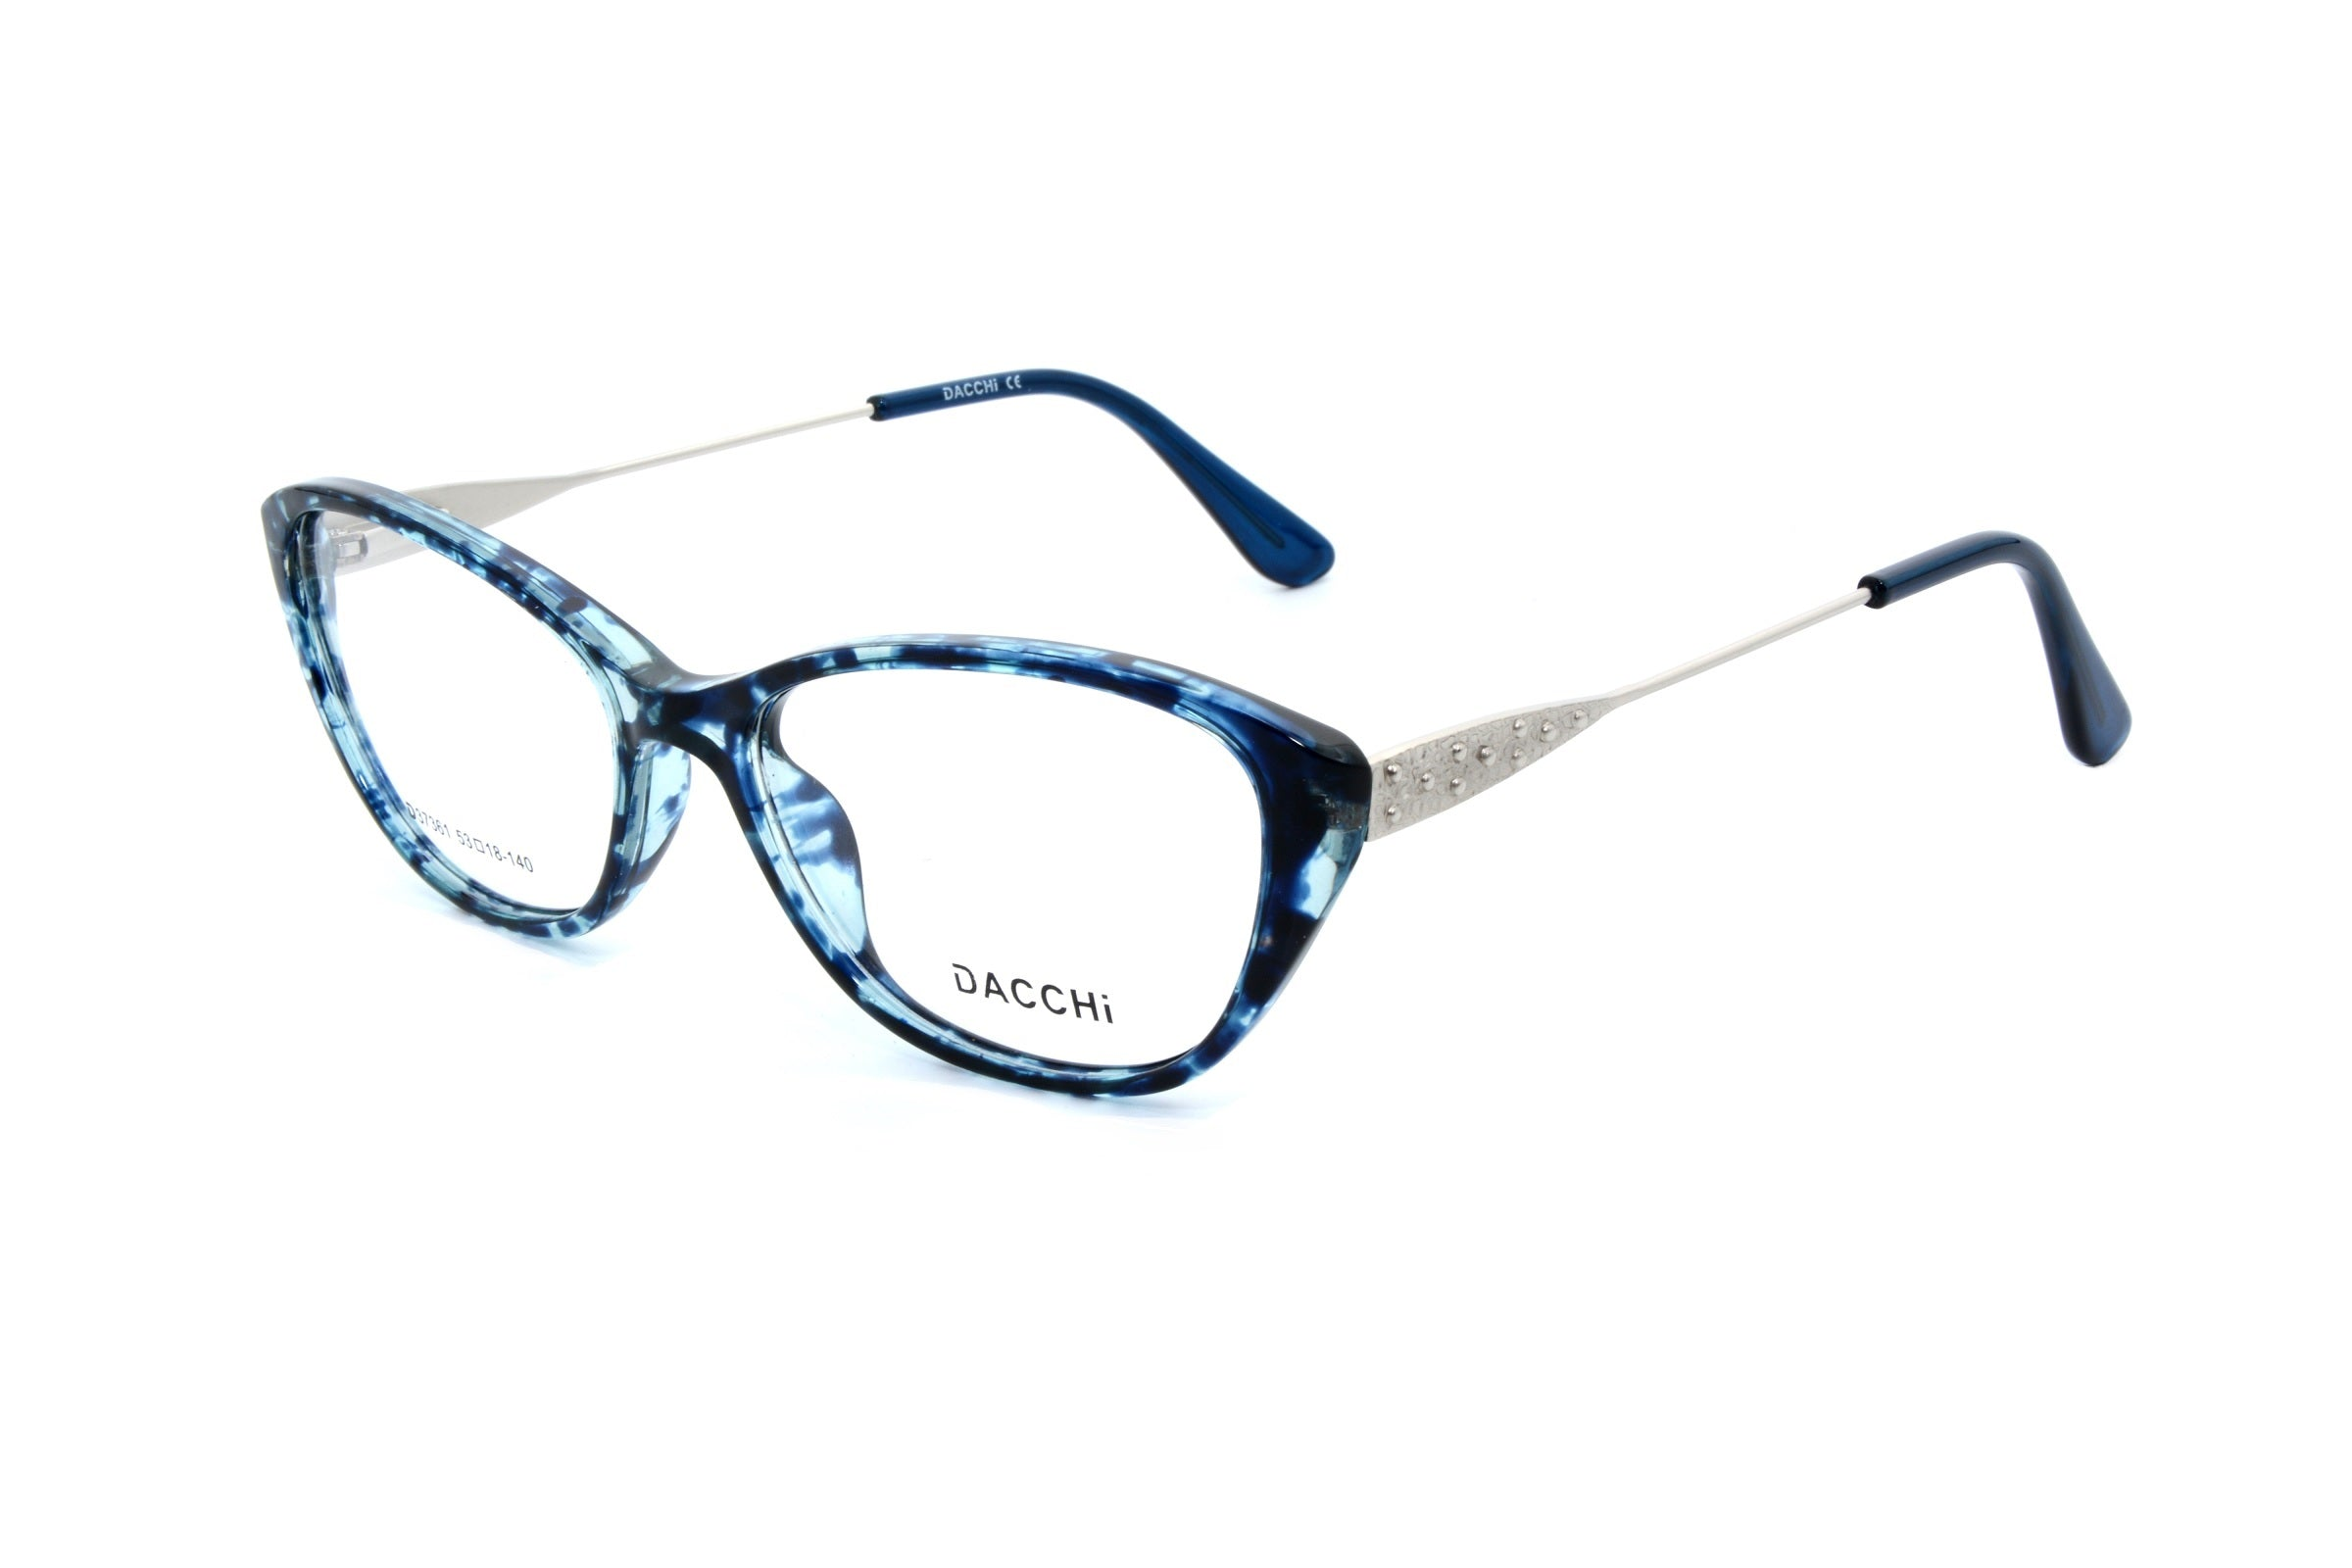 Dacchi eyewear 37361, C4 - Optics Trading